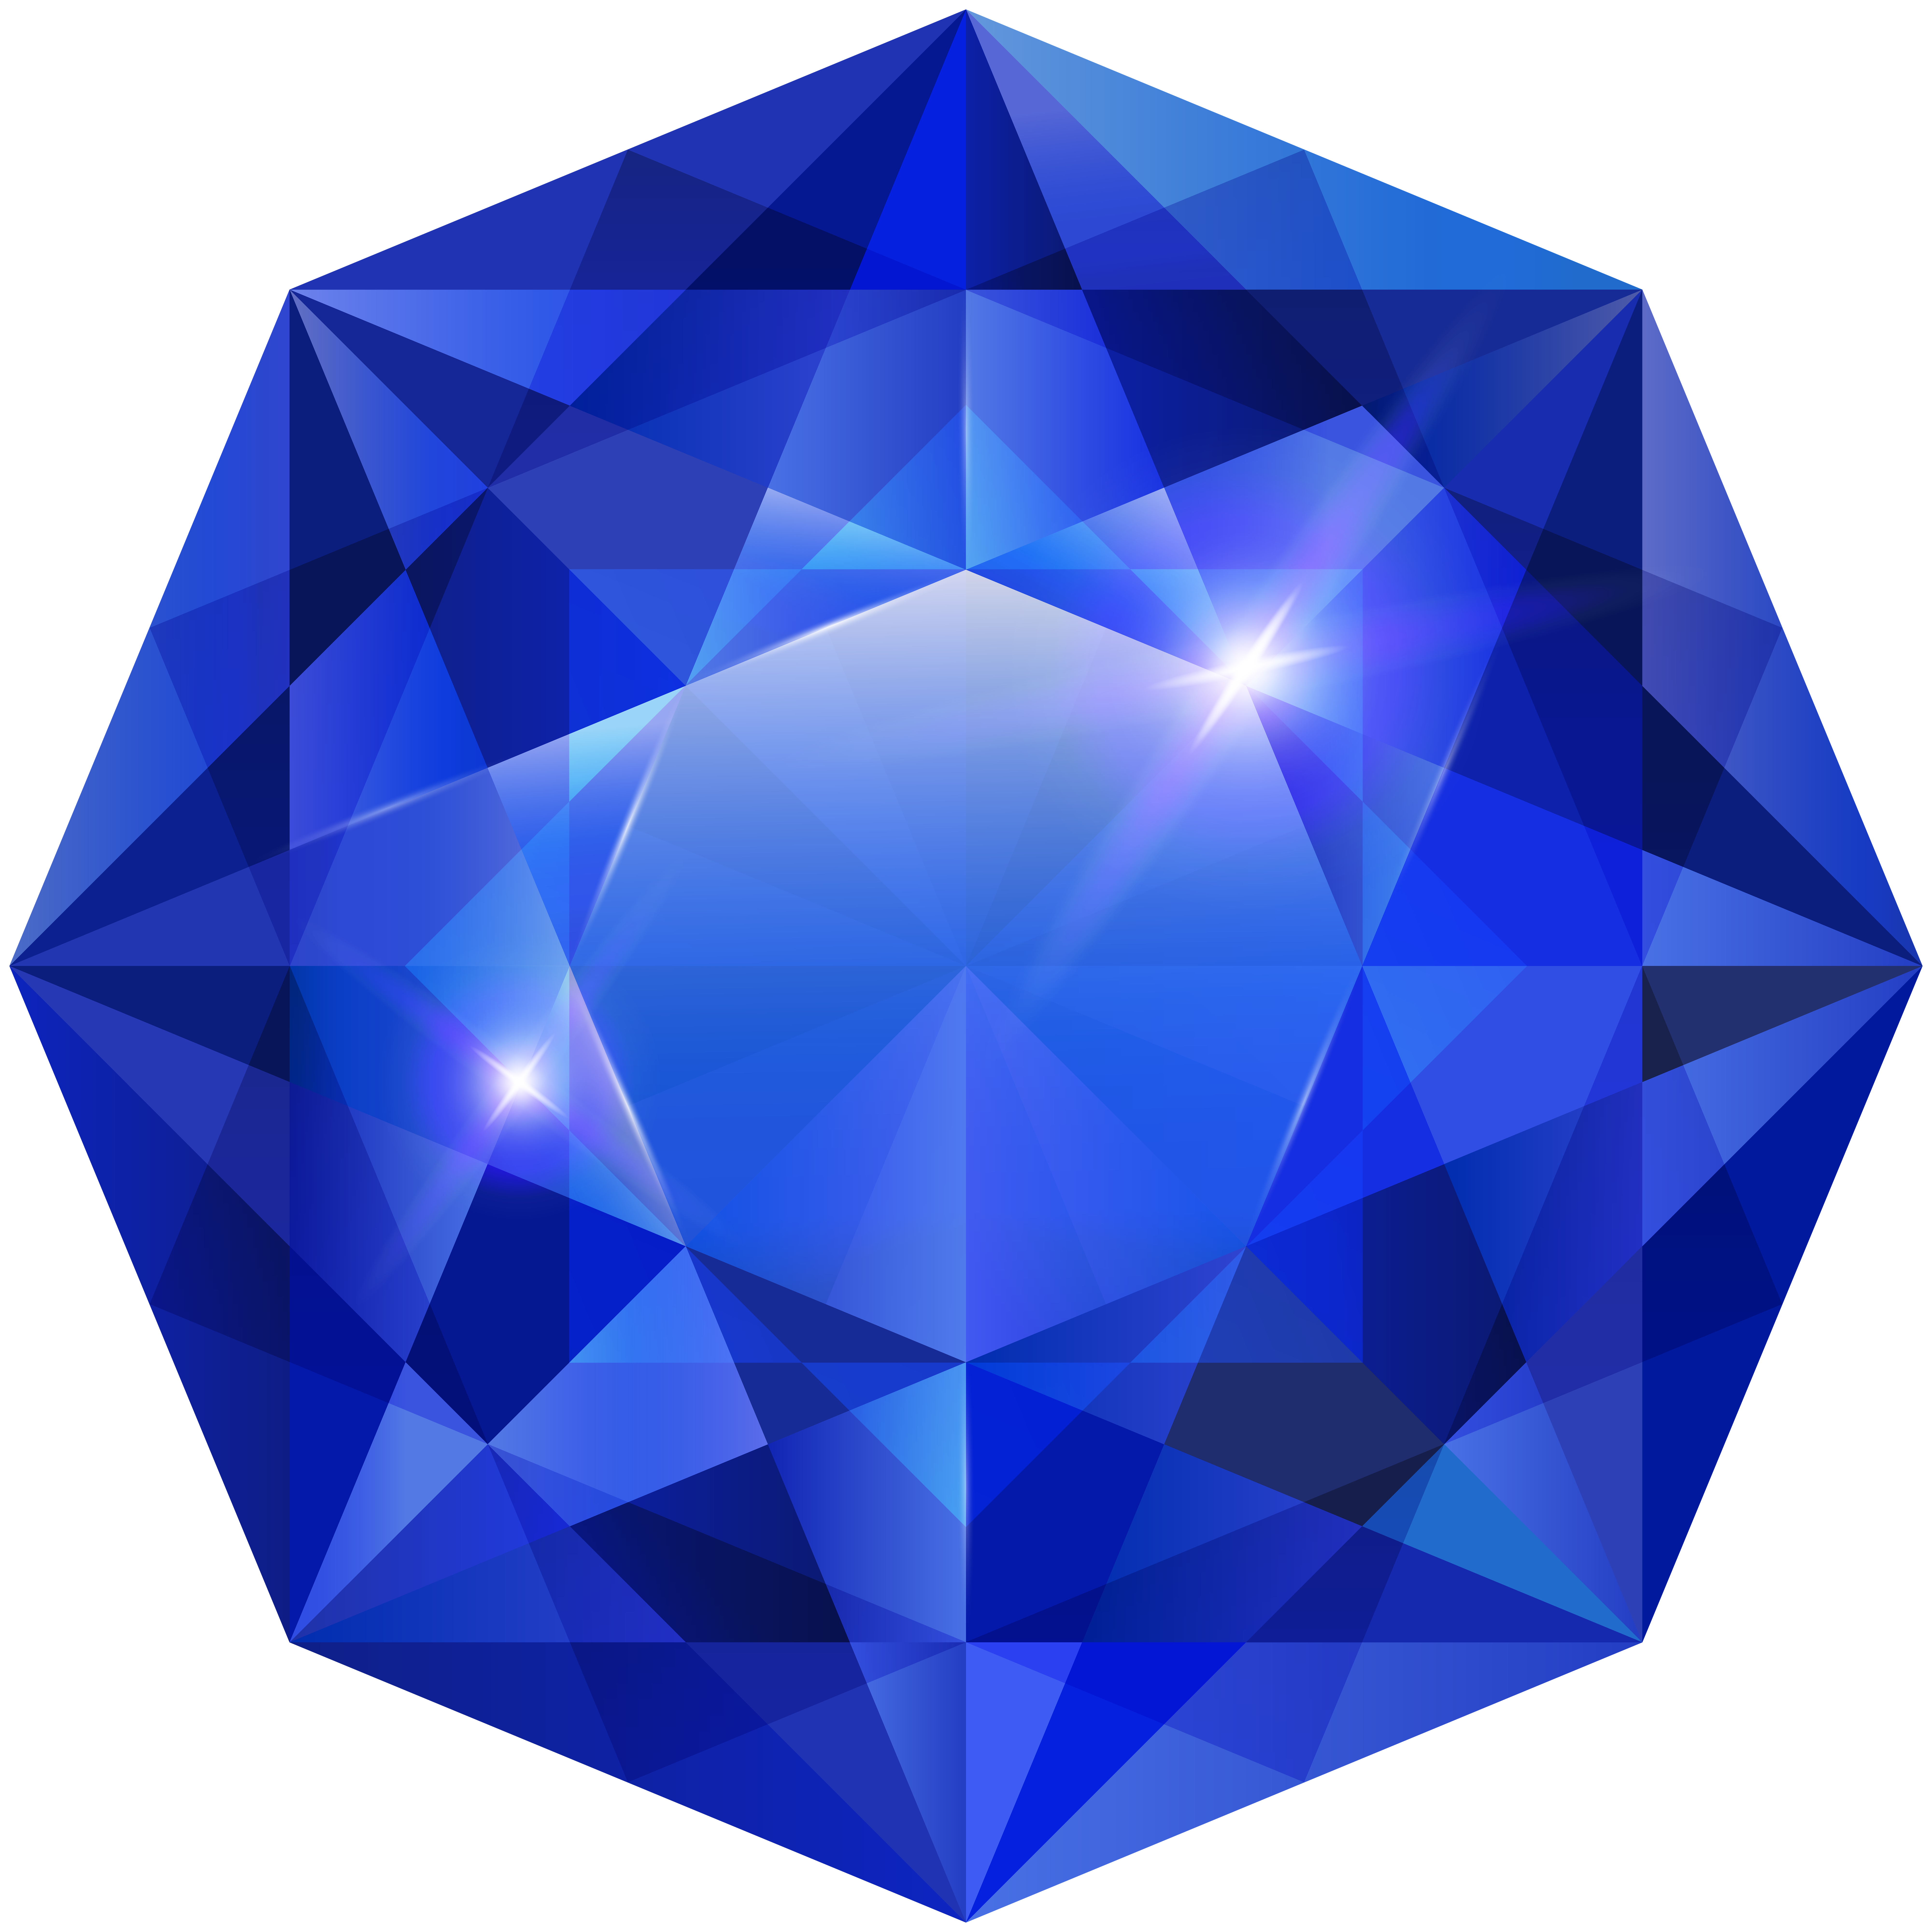 Diamond computer file png. Crystal clipart blue crystal